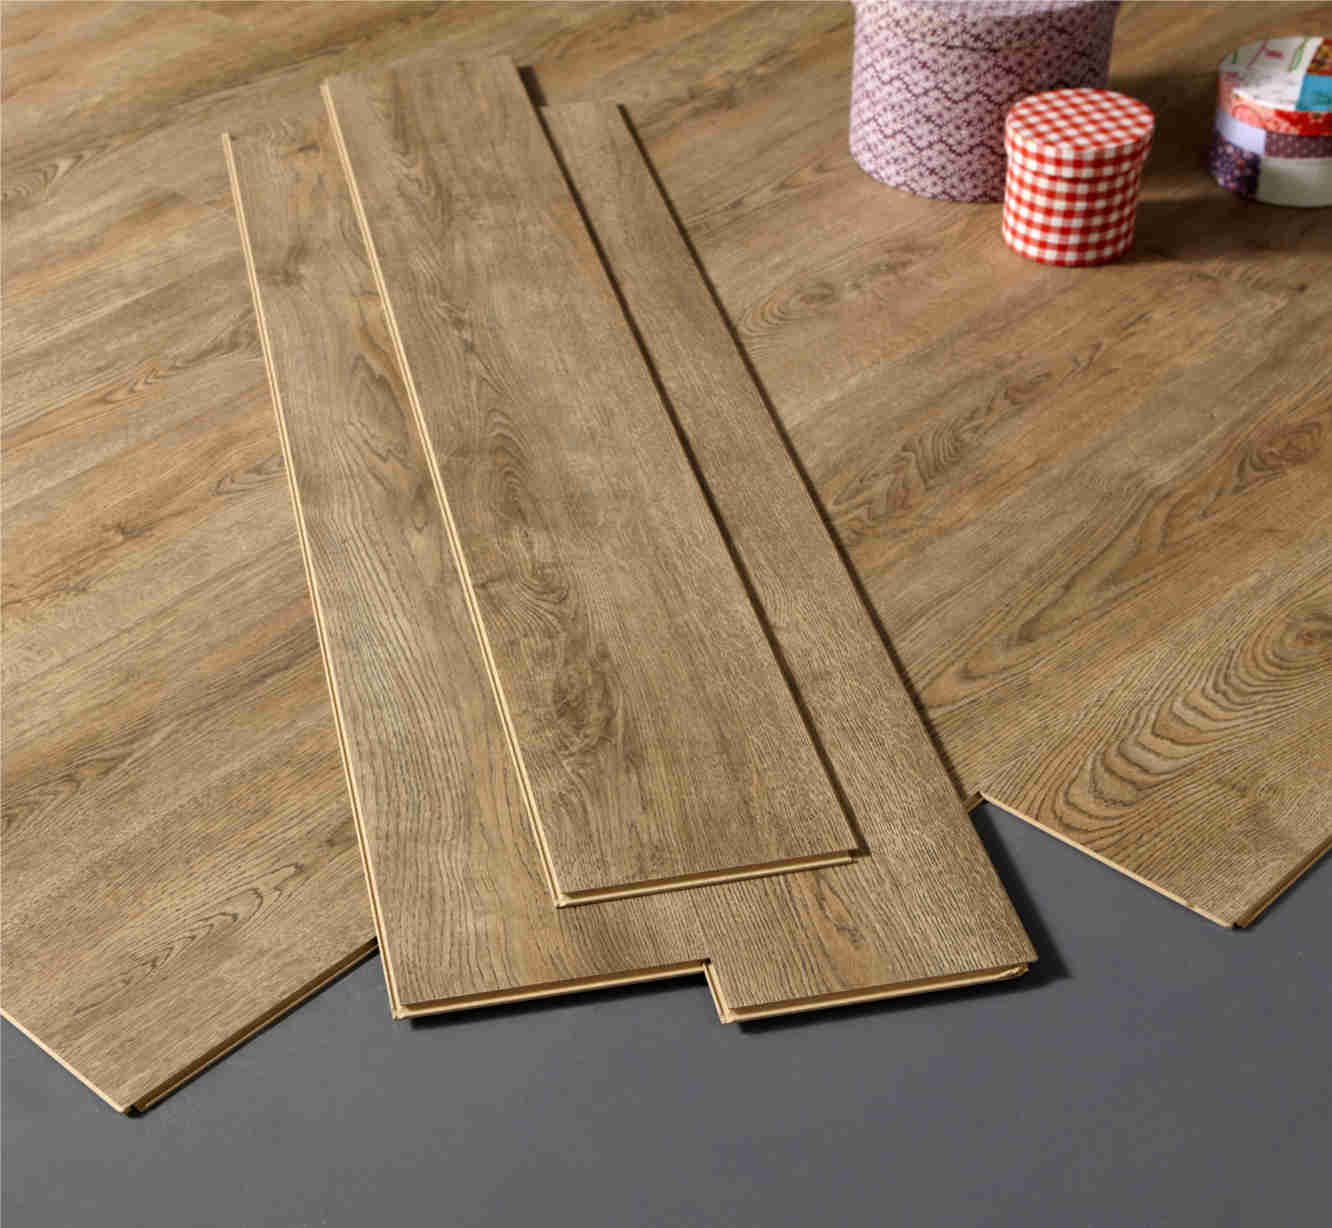 pose parquet stratifi leroy merlin latest parquet stratifie castorama parquet flottant salle de. Black Bedroom Furniture Sets. Home Design Ideas